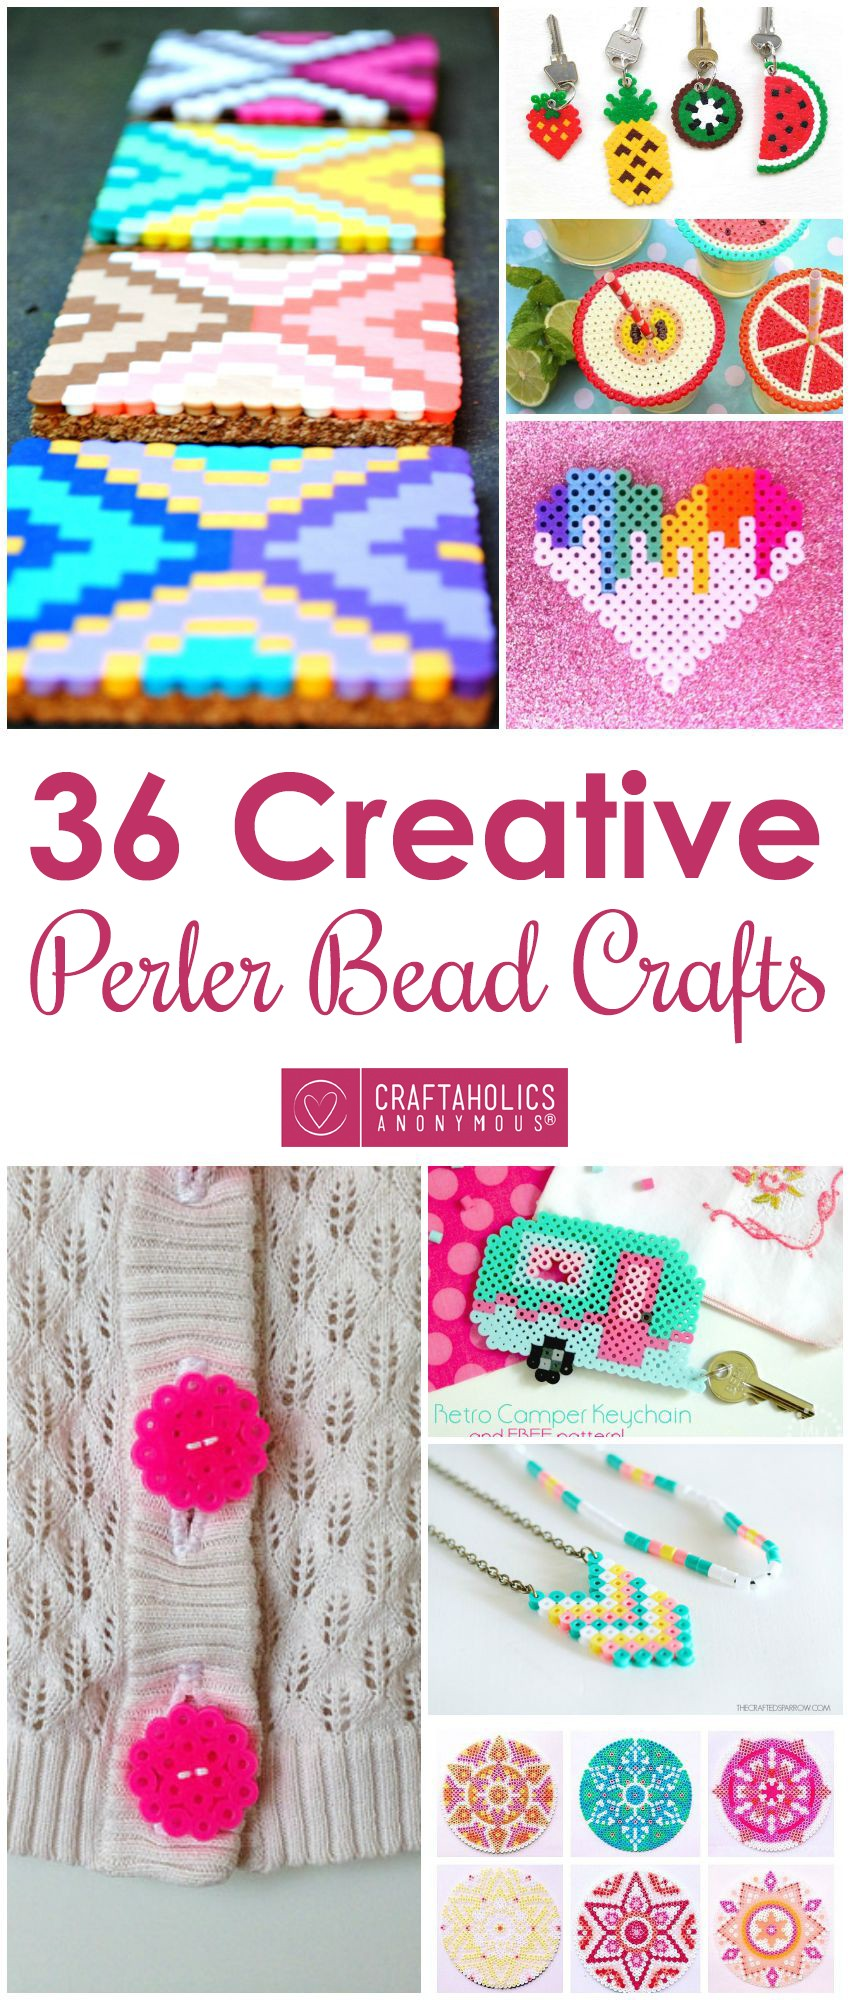 36 Perler Bead Crafts Craftaholics Anonymous®